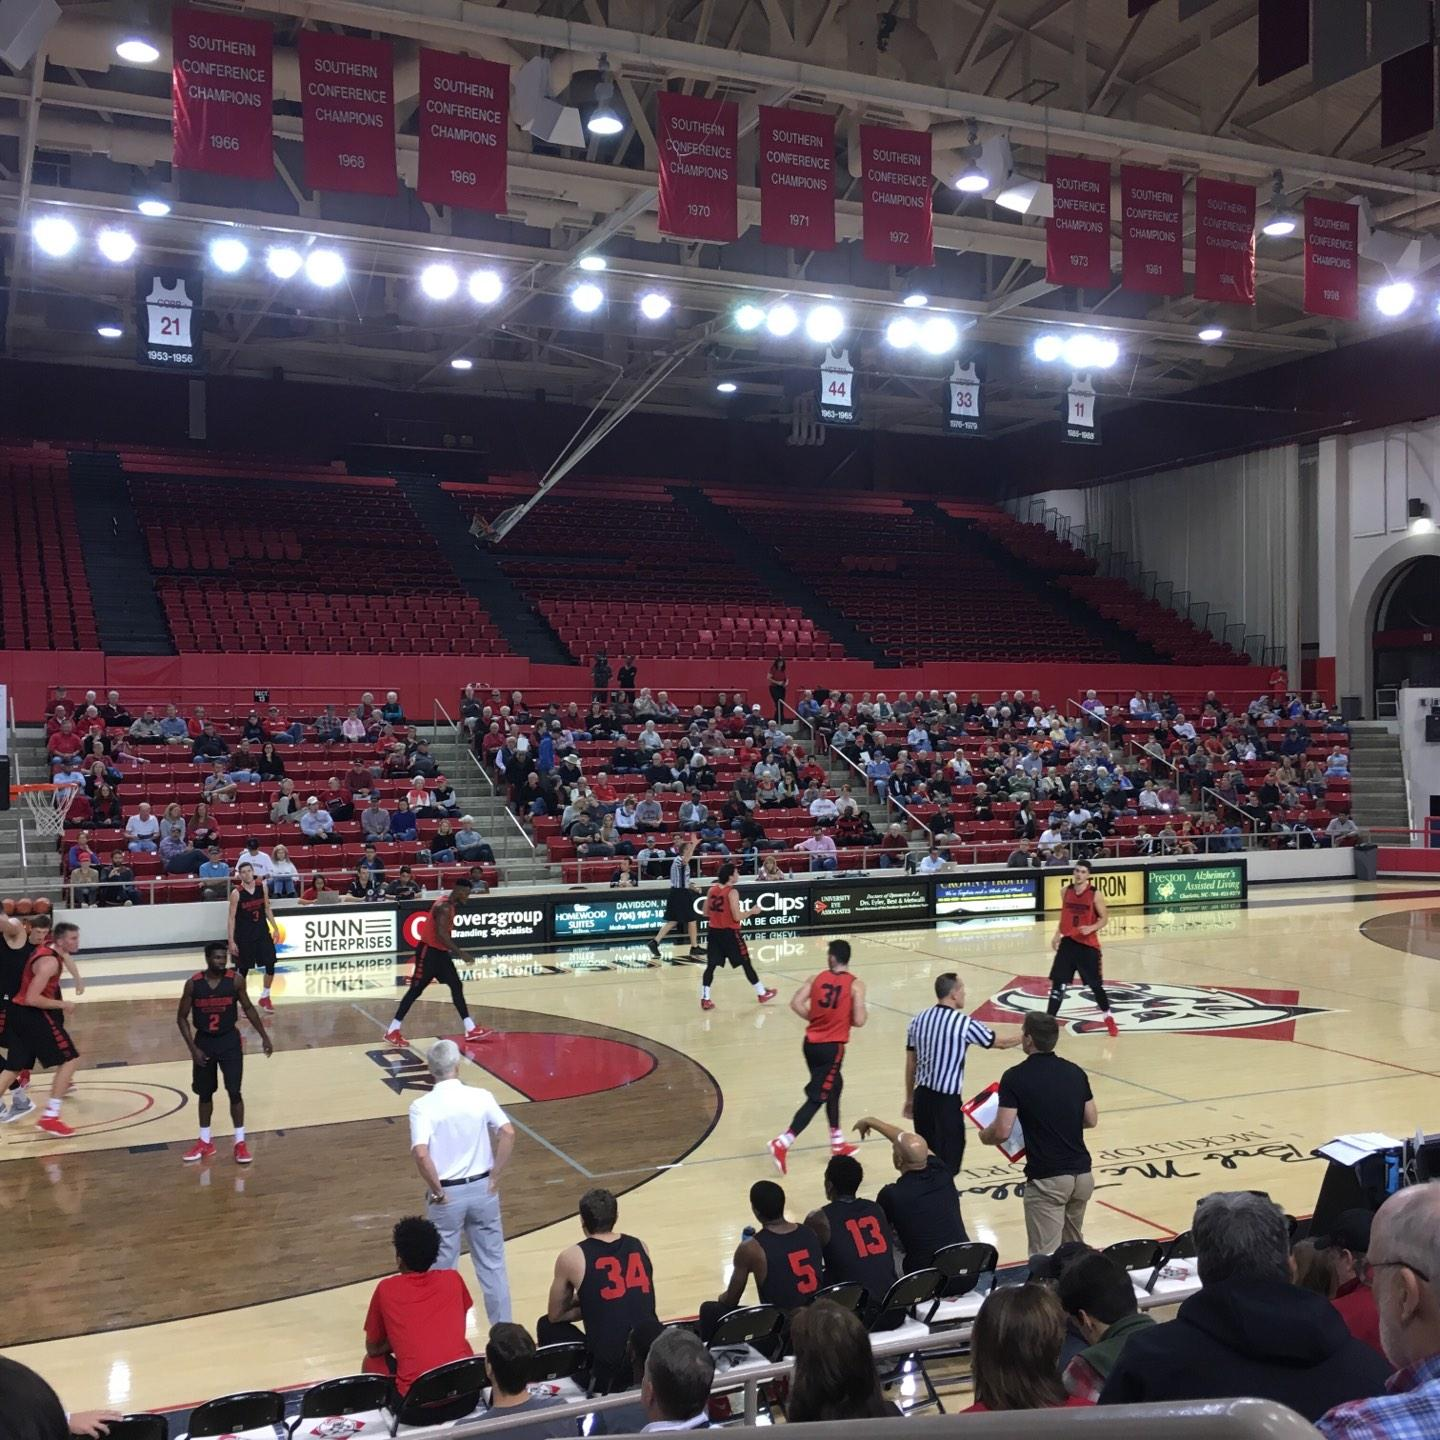 John M. Belk Arena Section 14 Row G Seat 1